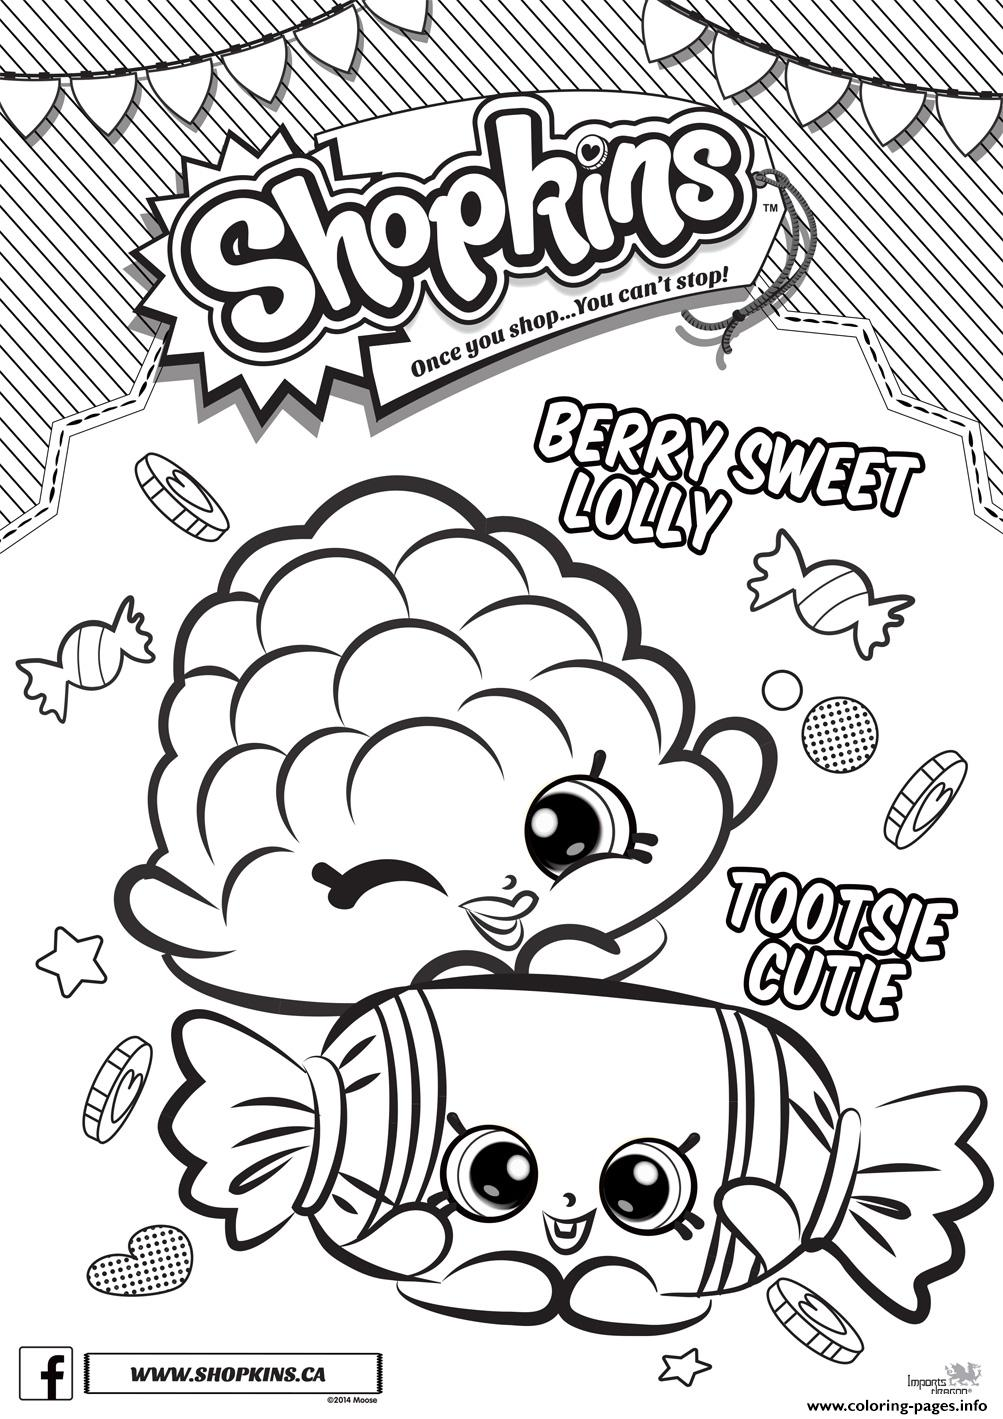 photograph regarding Free Printable Shopkins Coloring Pages titled Shopkins Berry Adorable Lolly Tootsie Cutie Coloring Webpages